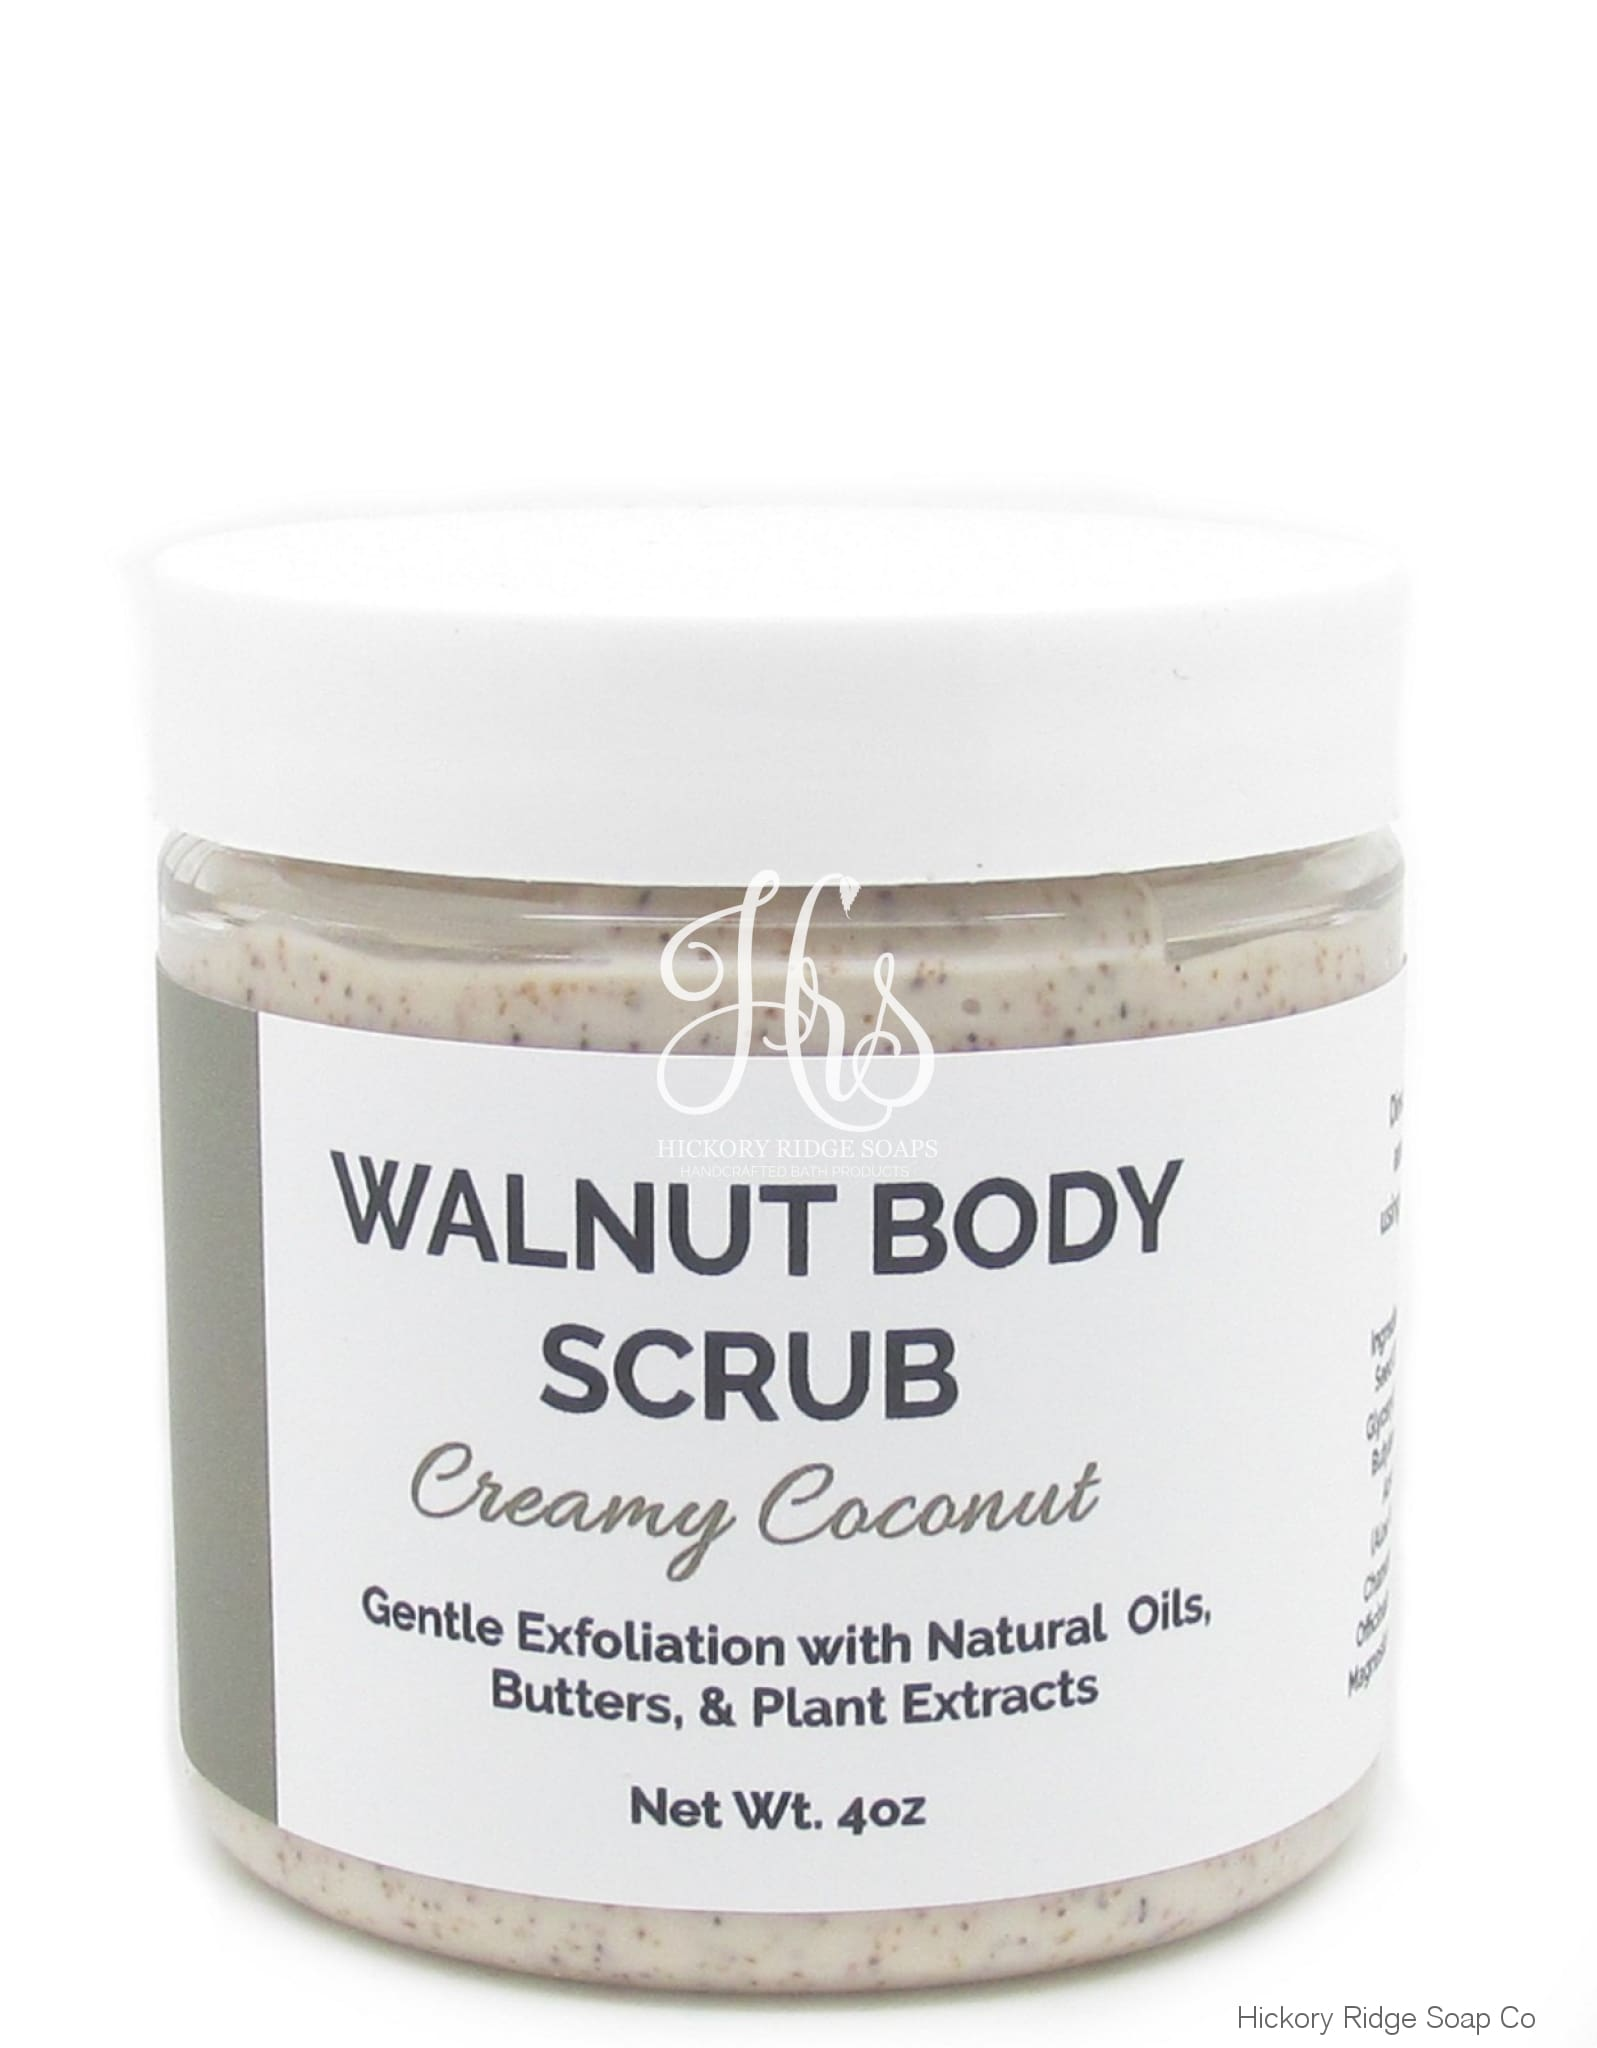 Walnut Body Scrub Body Scrub